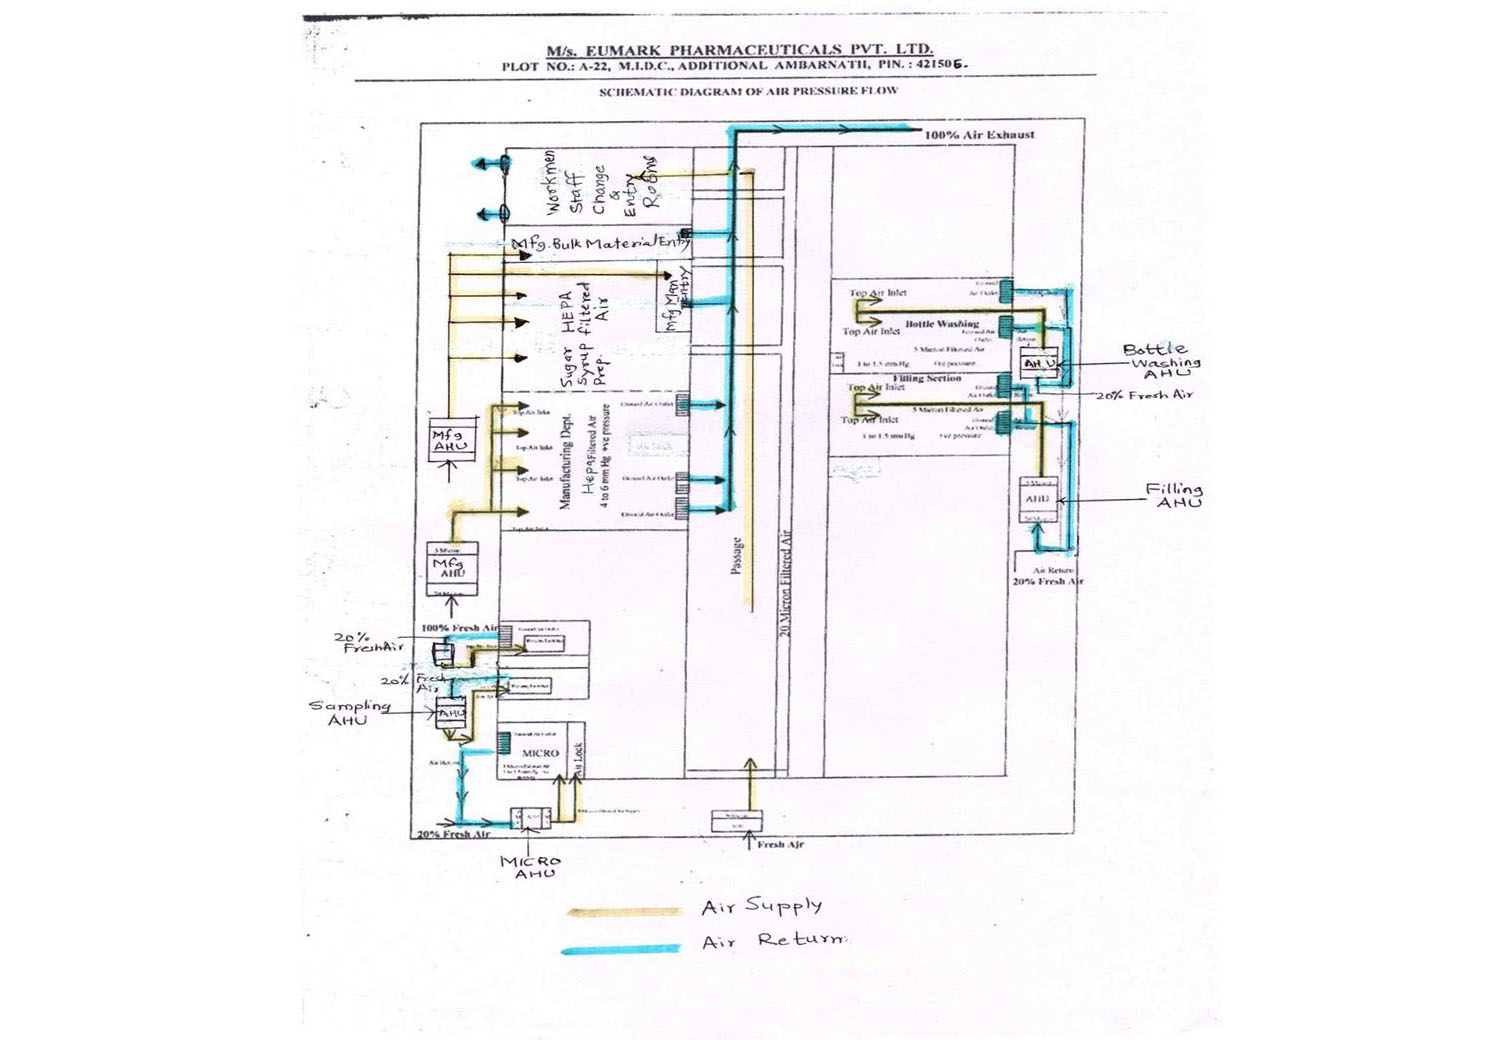 Hvac System Drawing Of Schematic Diagram Air Pressure Flow